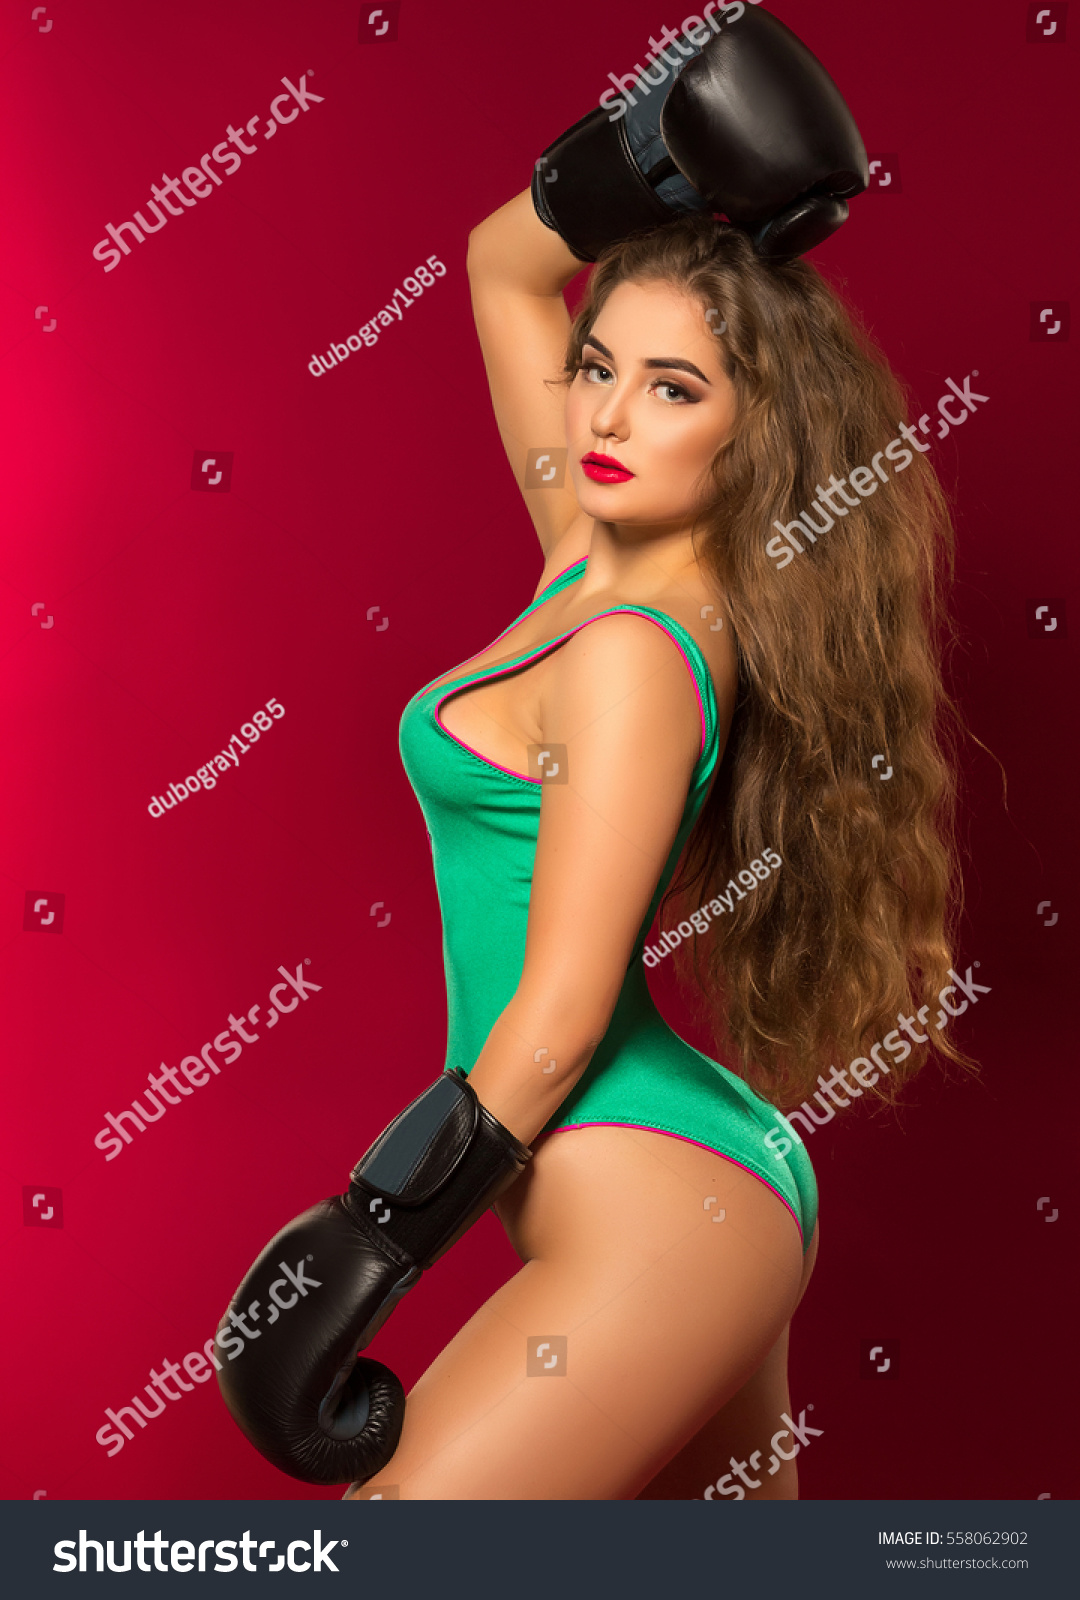 Boxing erotic womens